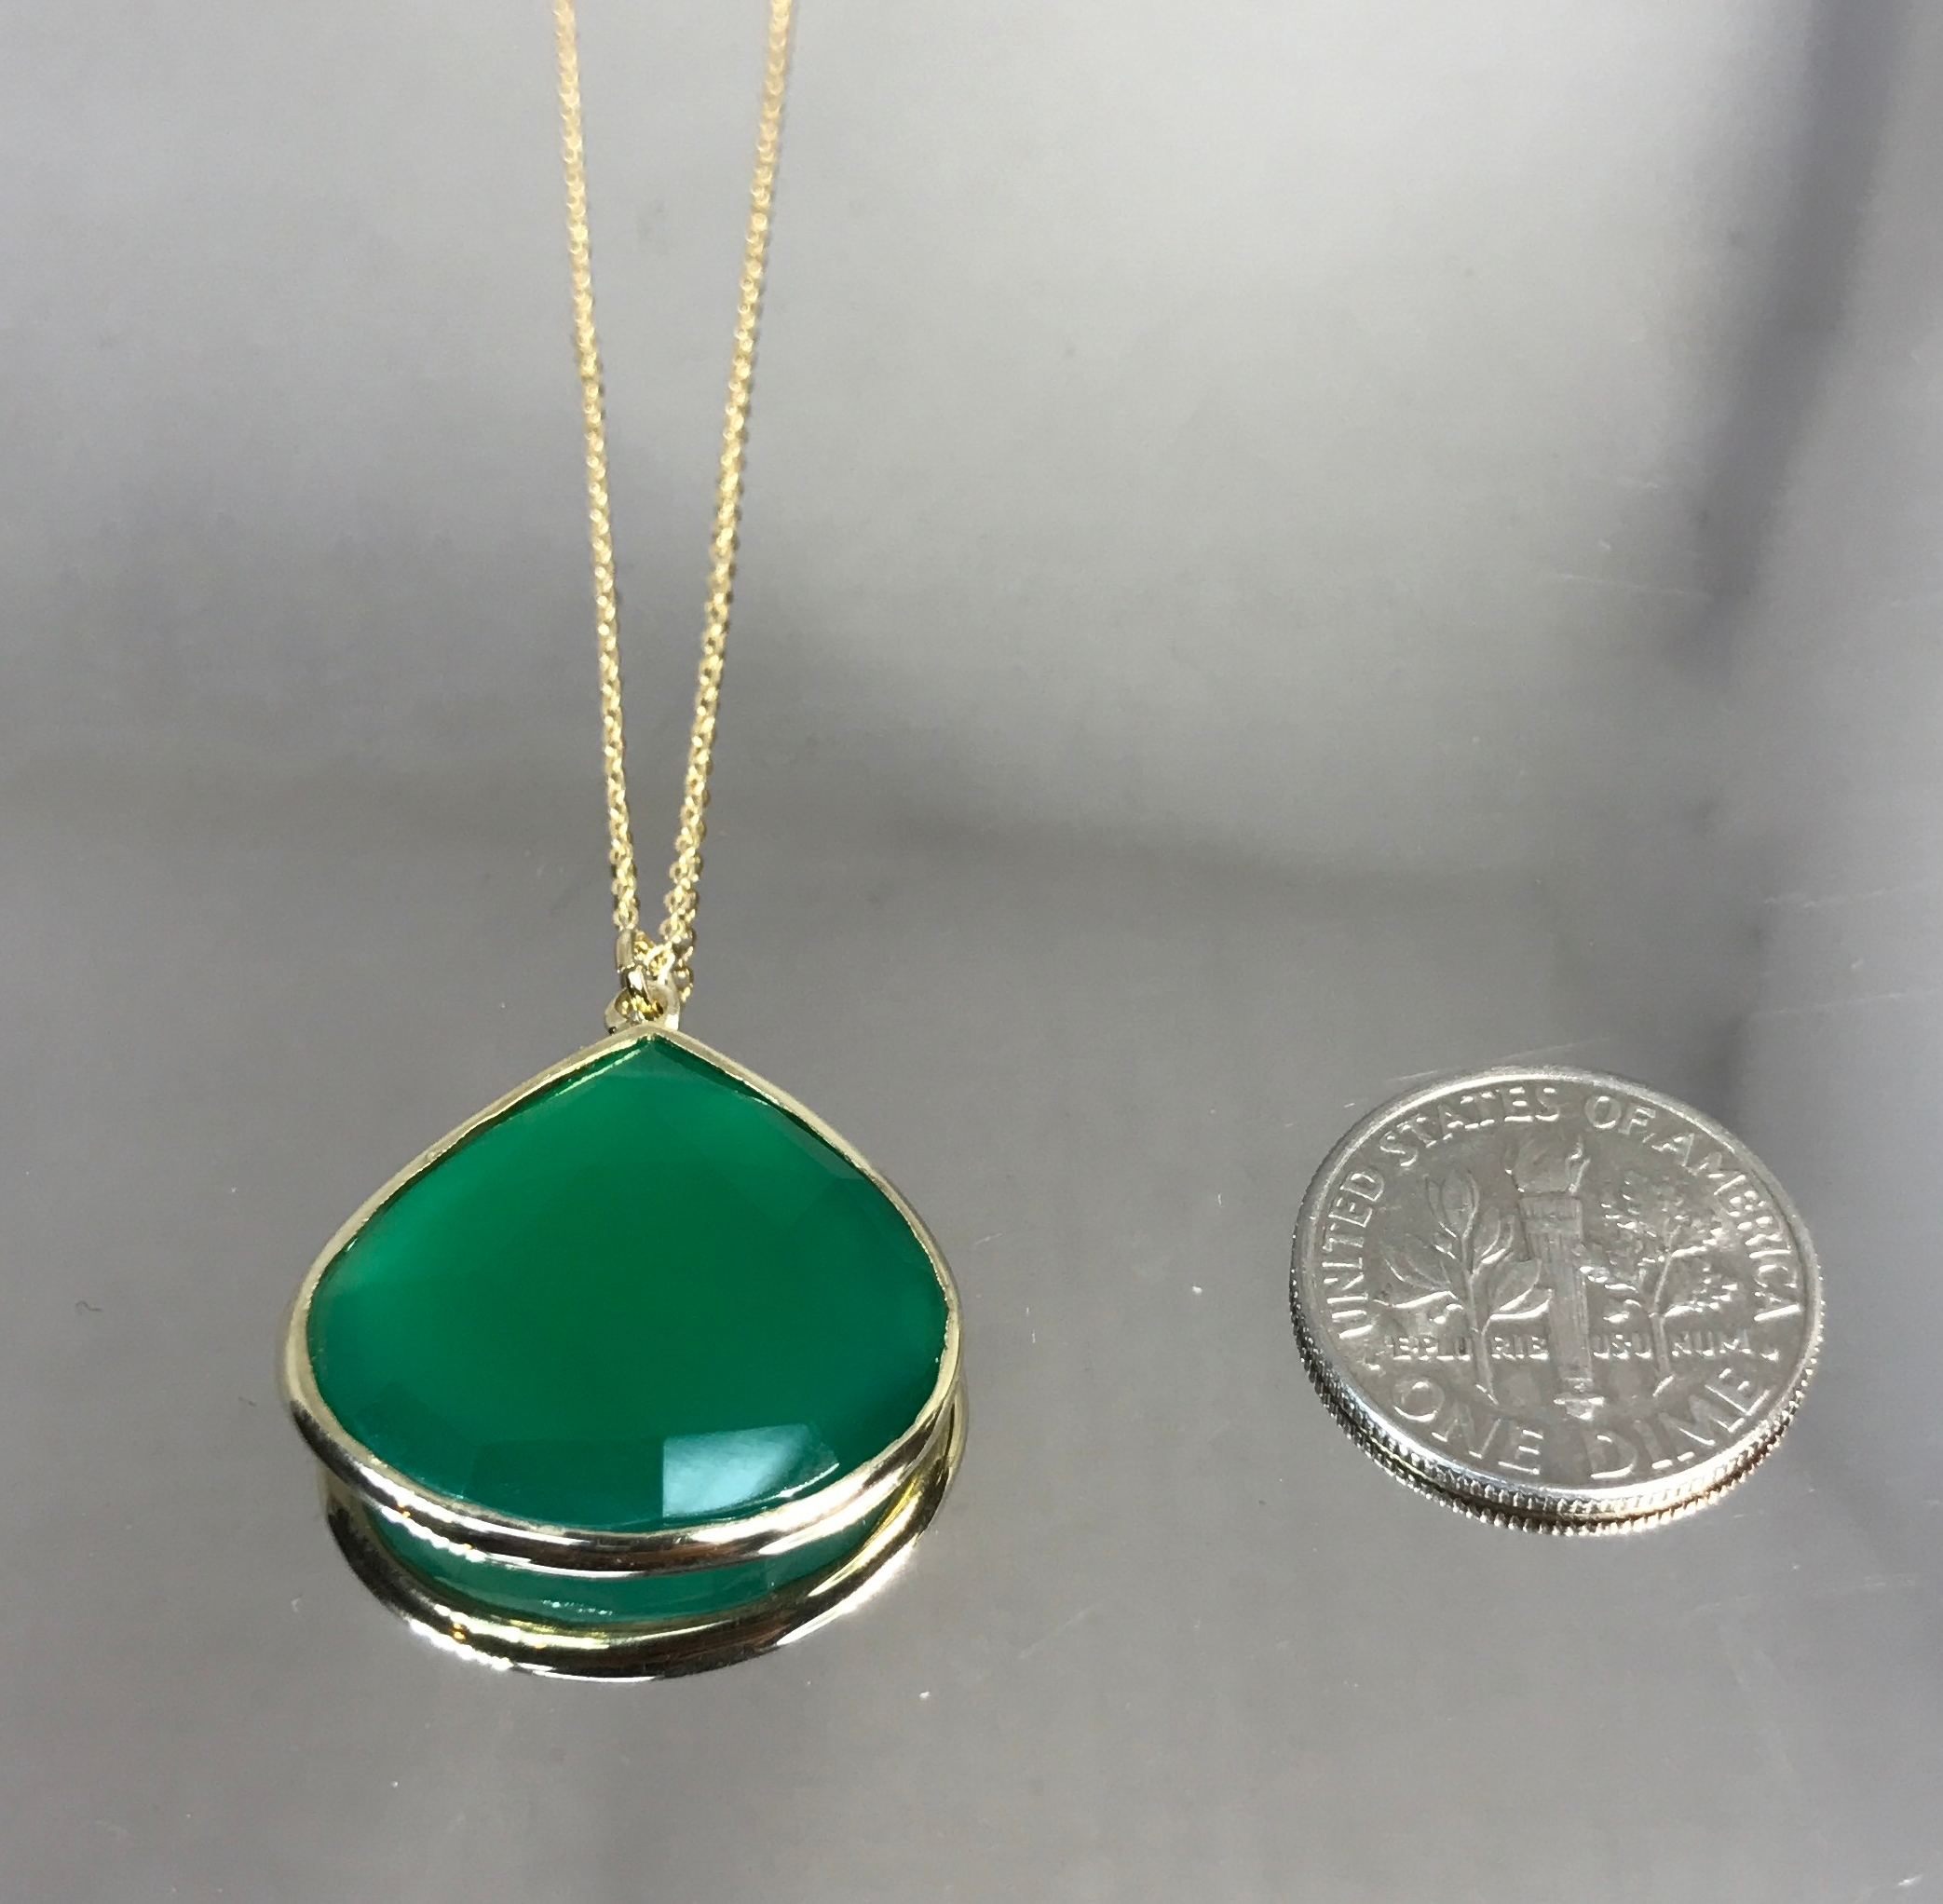 onyx thailand green overstock necklace free and silver shipping malachite handmade watches jewelry product today